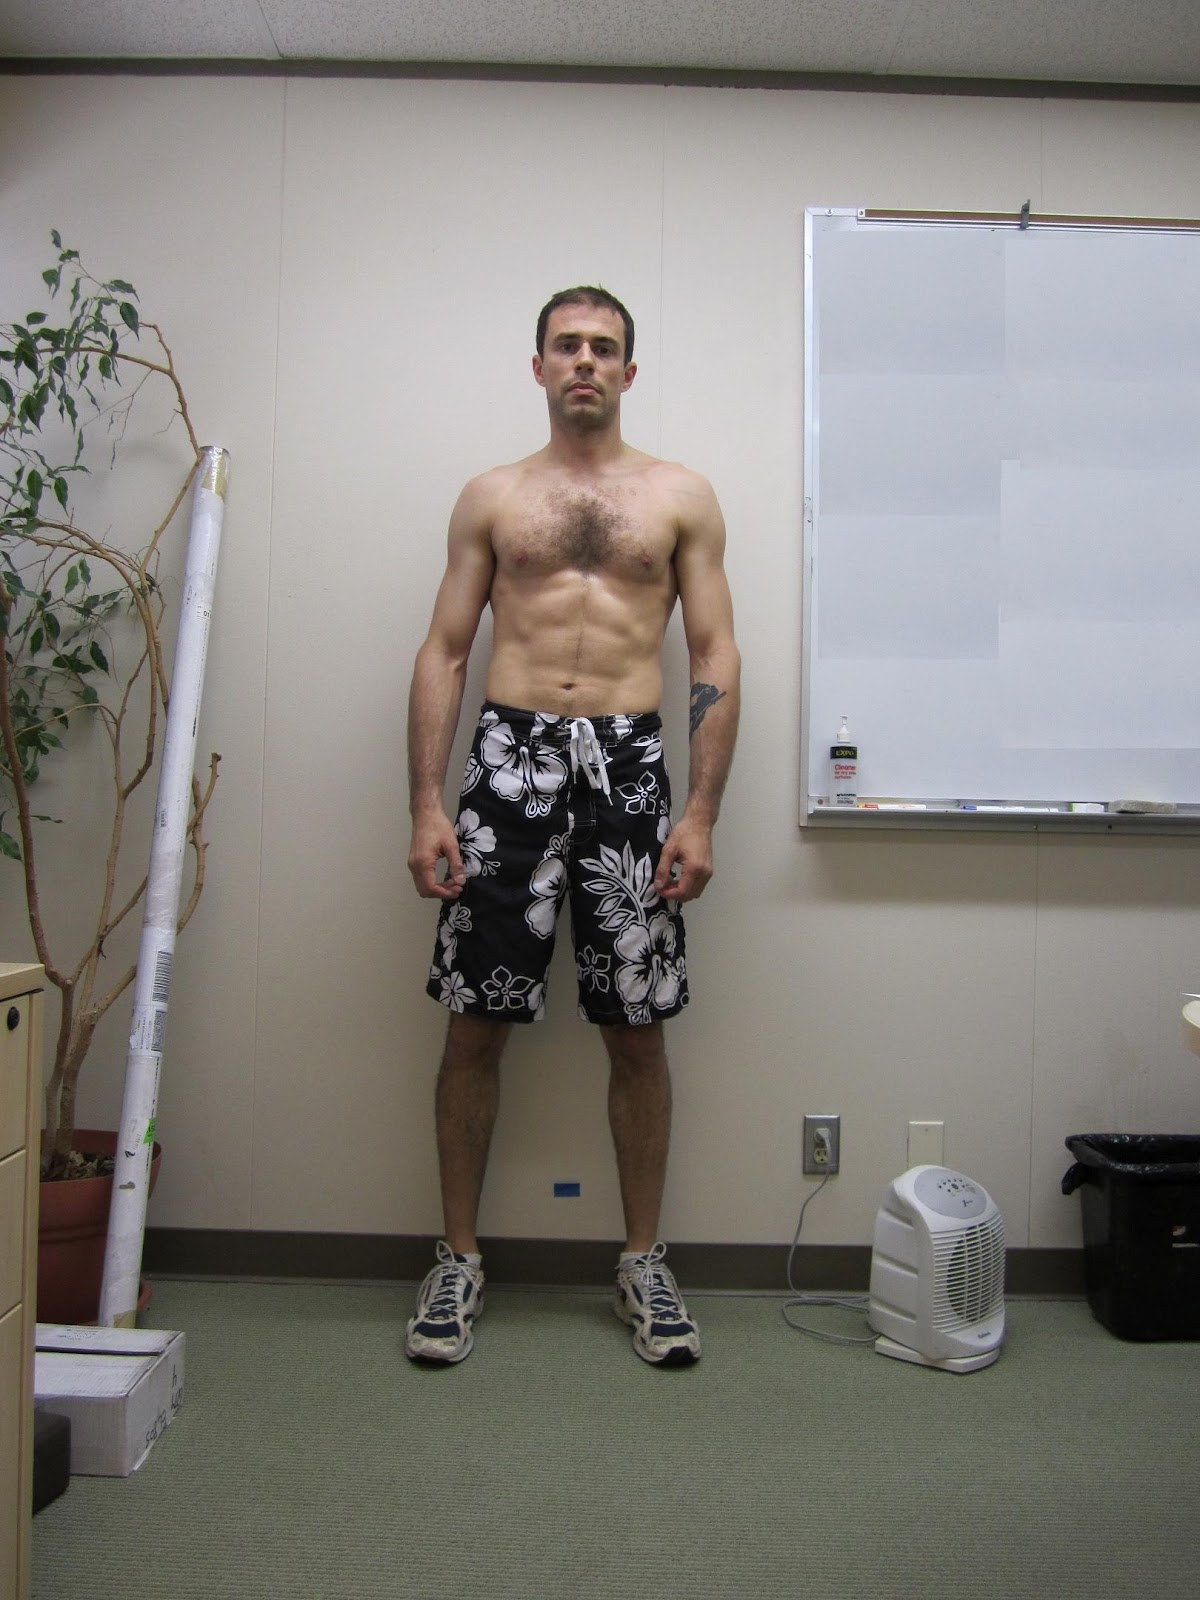 Convict Conditioning Results Convict Conditioning Results